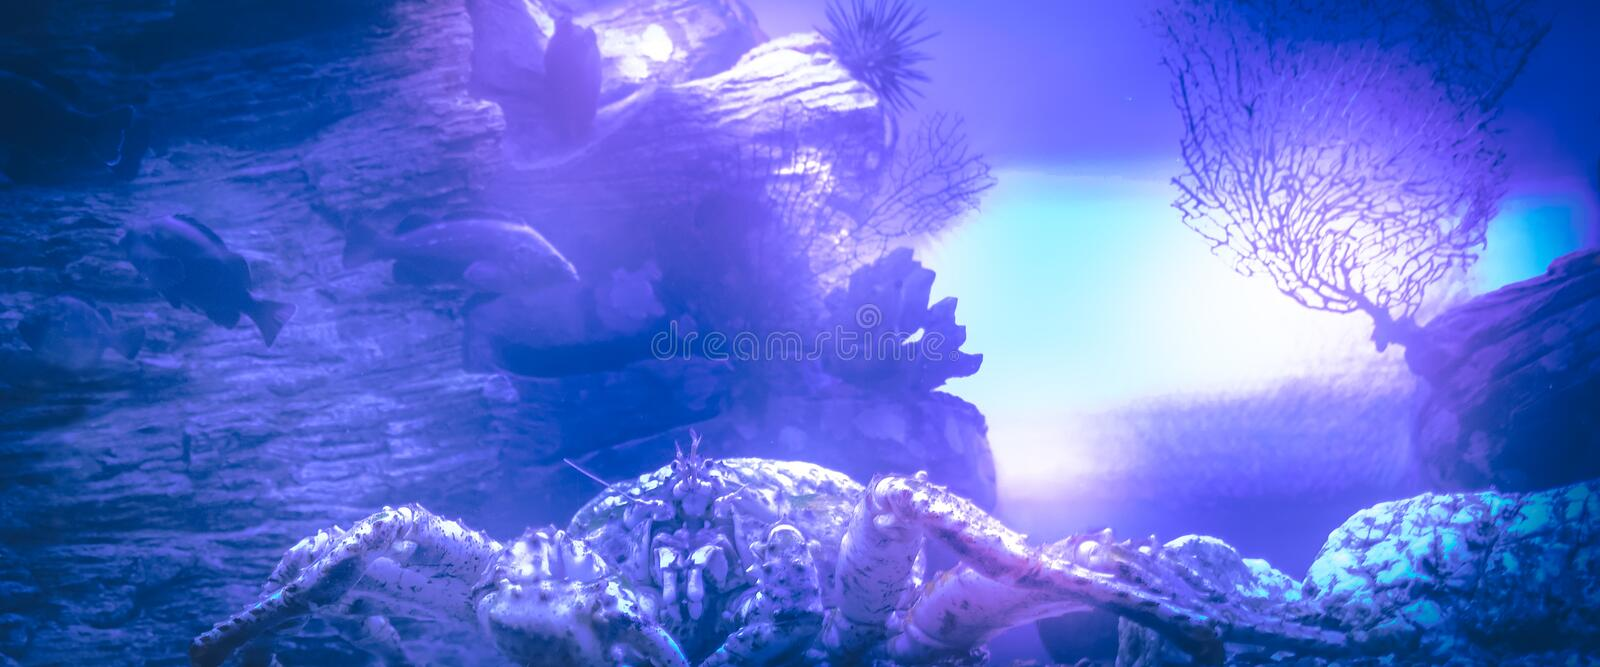 Underwater coral reef crab blue lilac purple marine background royalty free stock photography